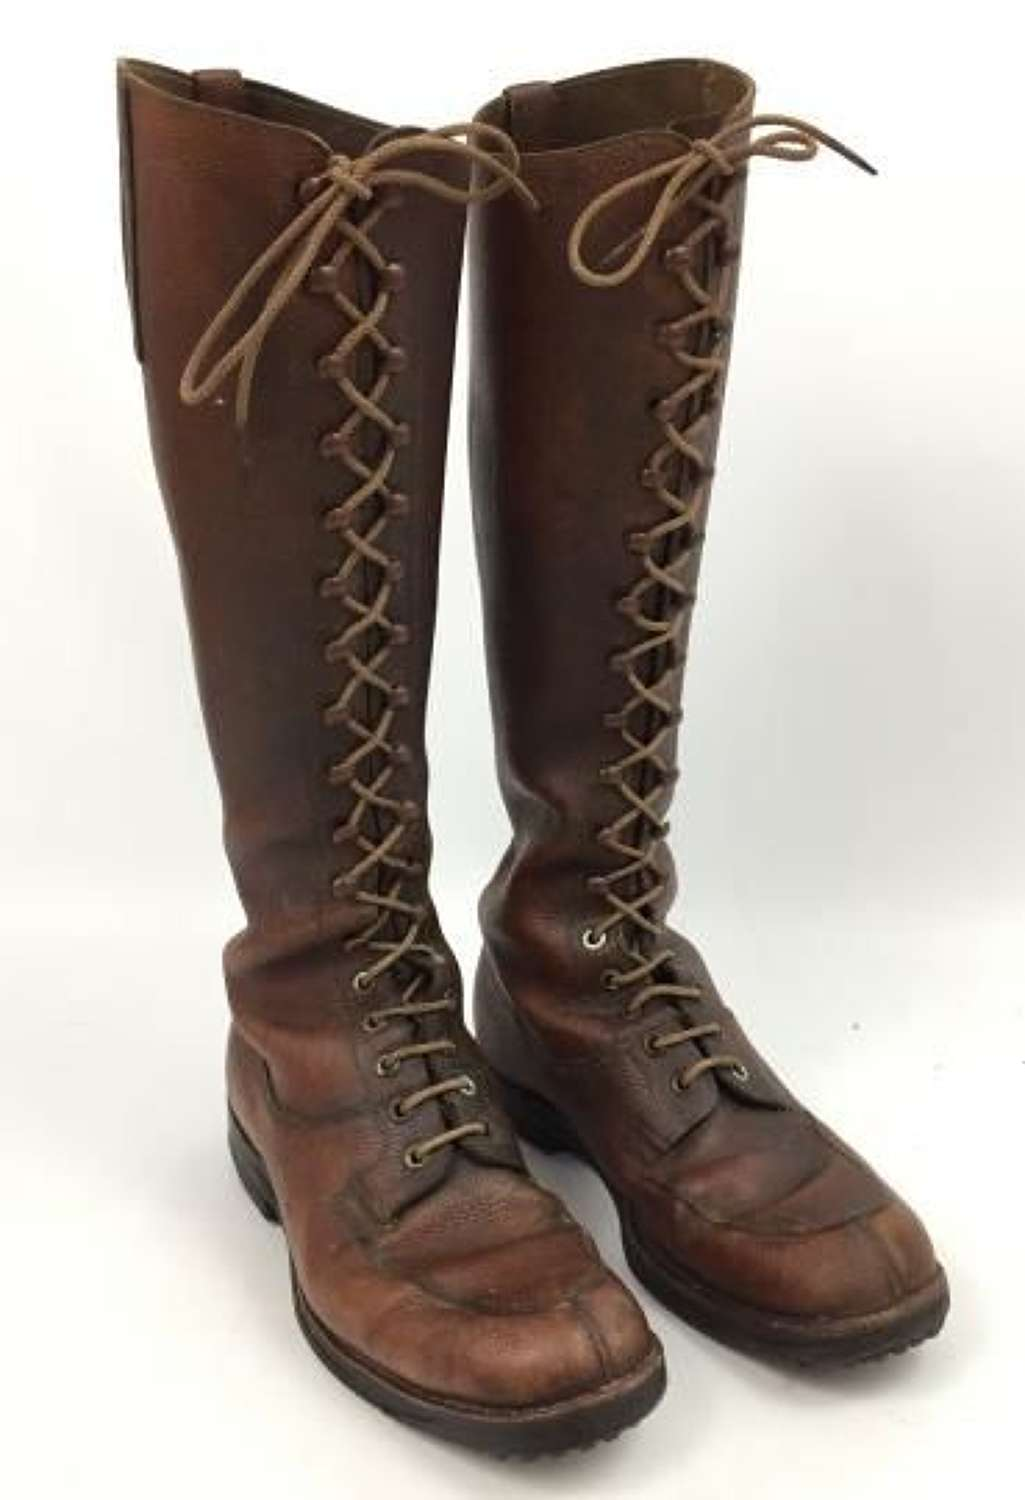 Original Great War Period Officers Field Boots by 'Lotus'